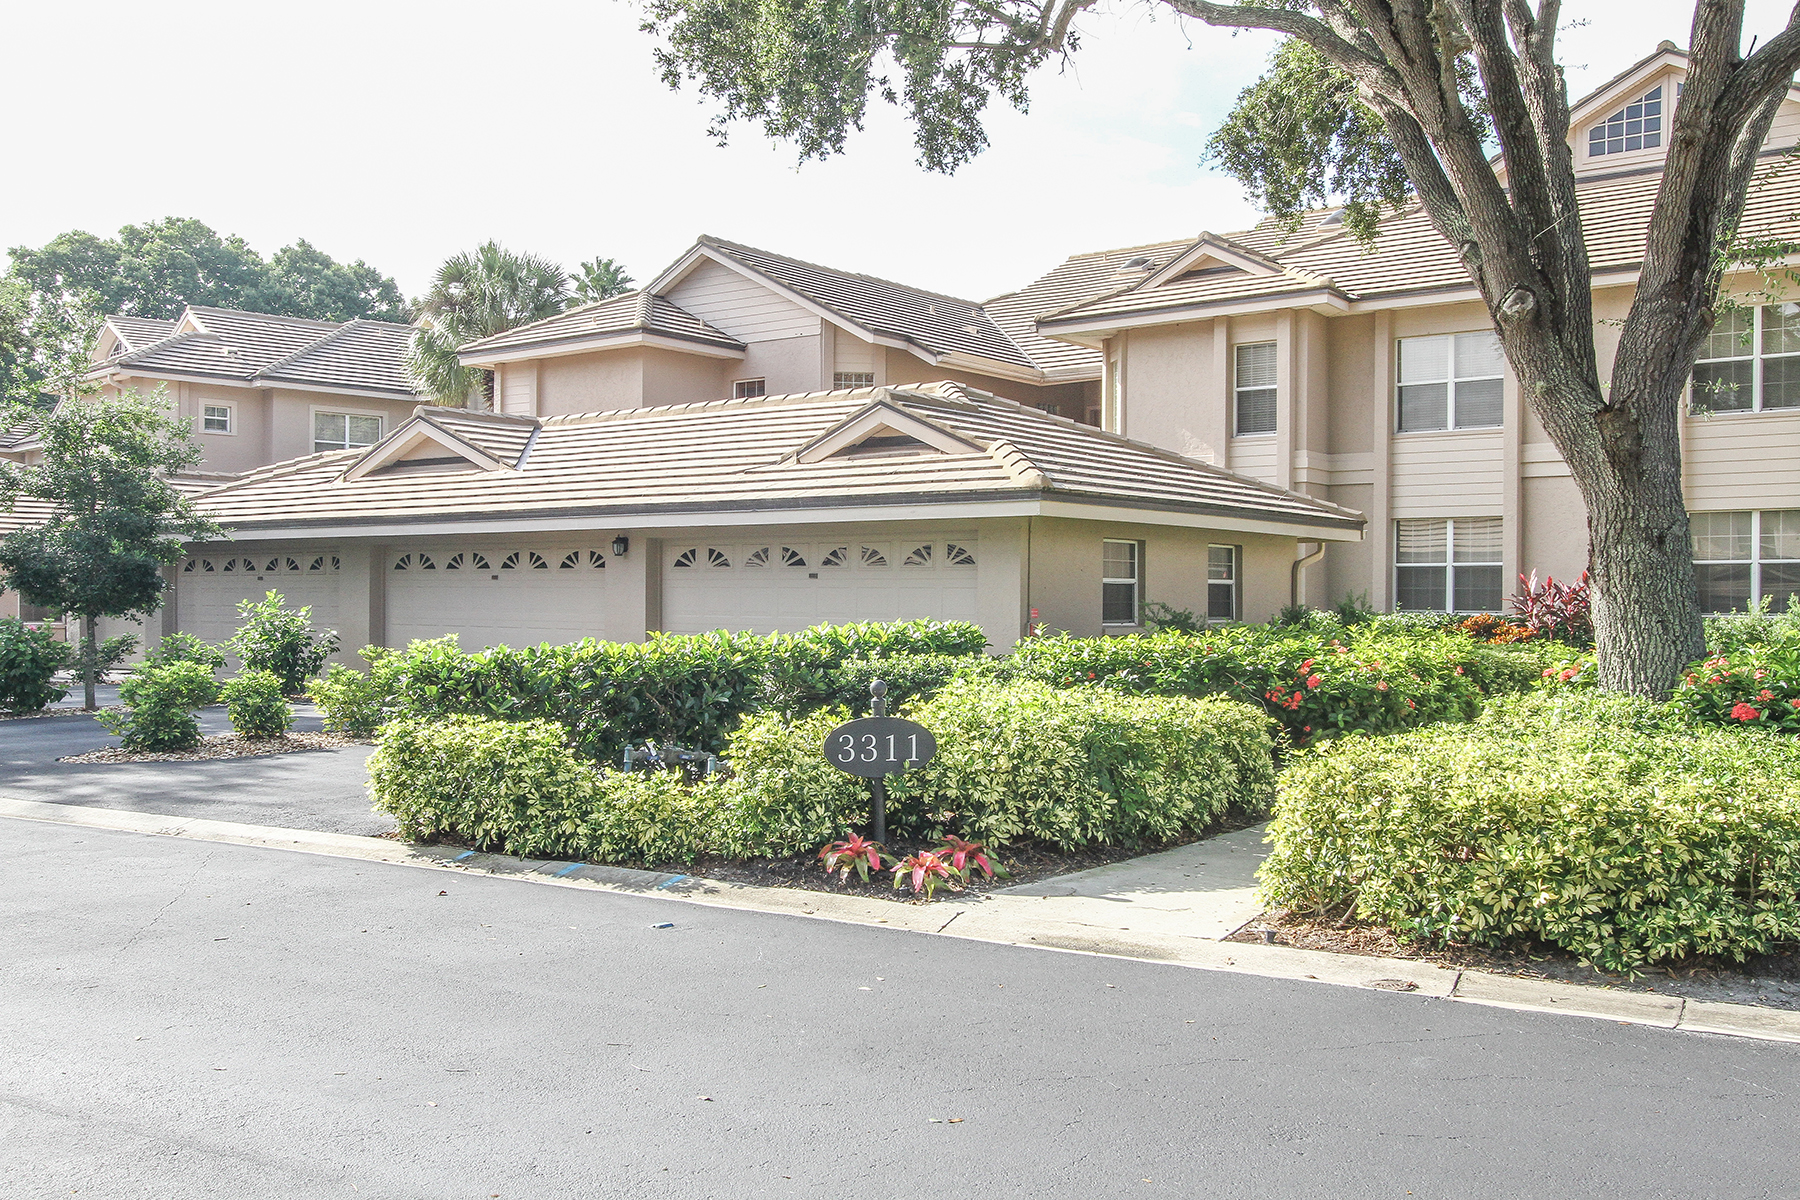 Property Of 3311 Glen Cairn Ct , 101, Bonita Springs, FL 34134